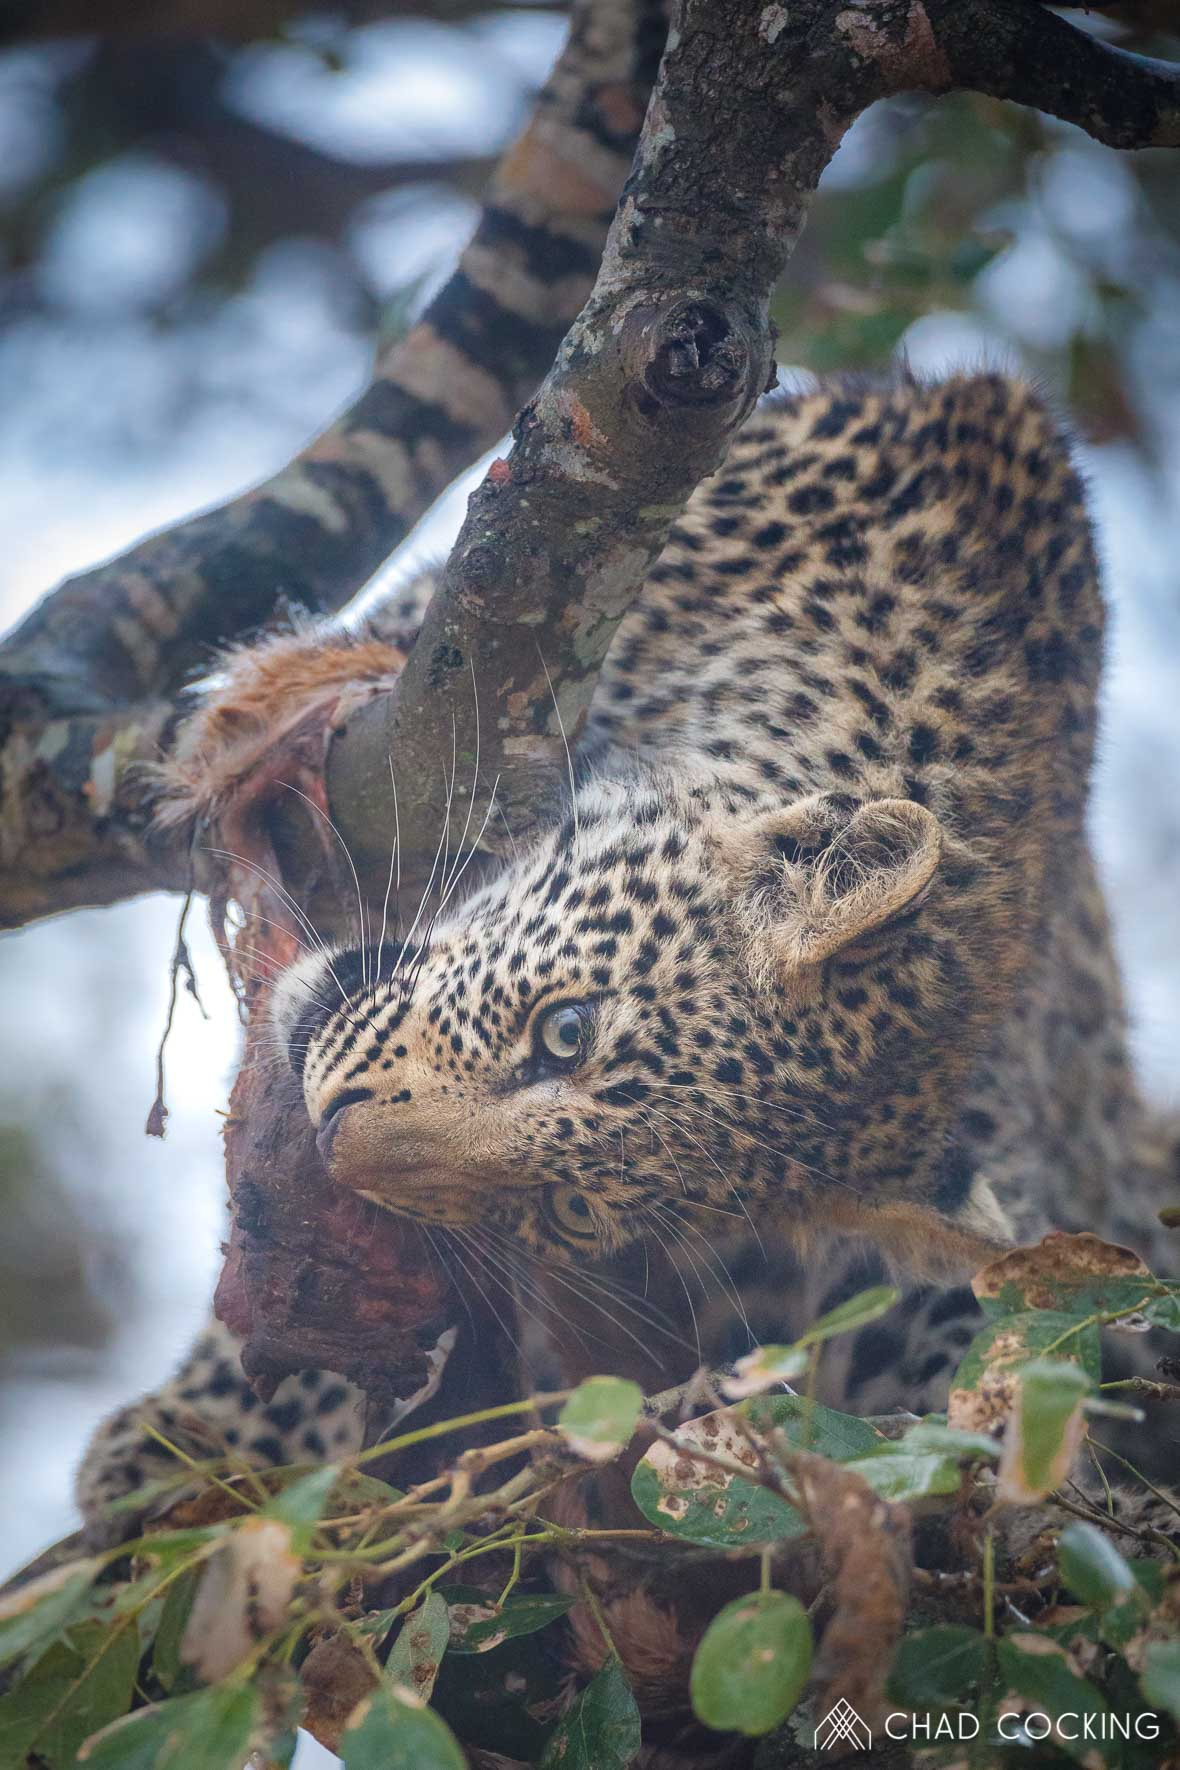 Photo credit: Chad Cocking | A young Leopard feeding on a kill up in a tree at Tanda Tula in the Timbavati Game Reserve, South Africa.